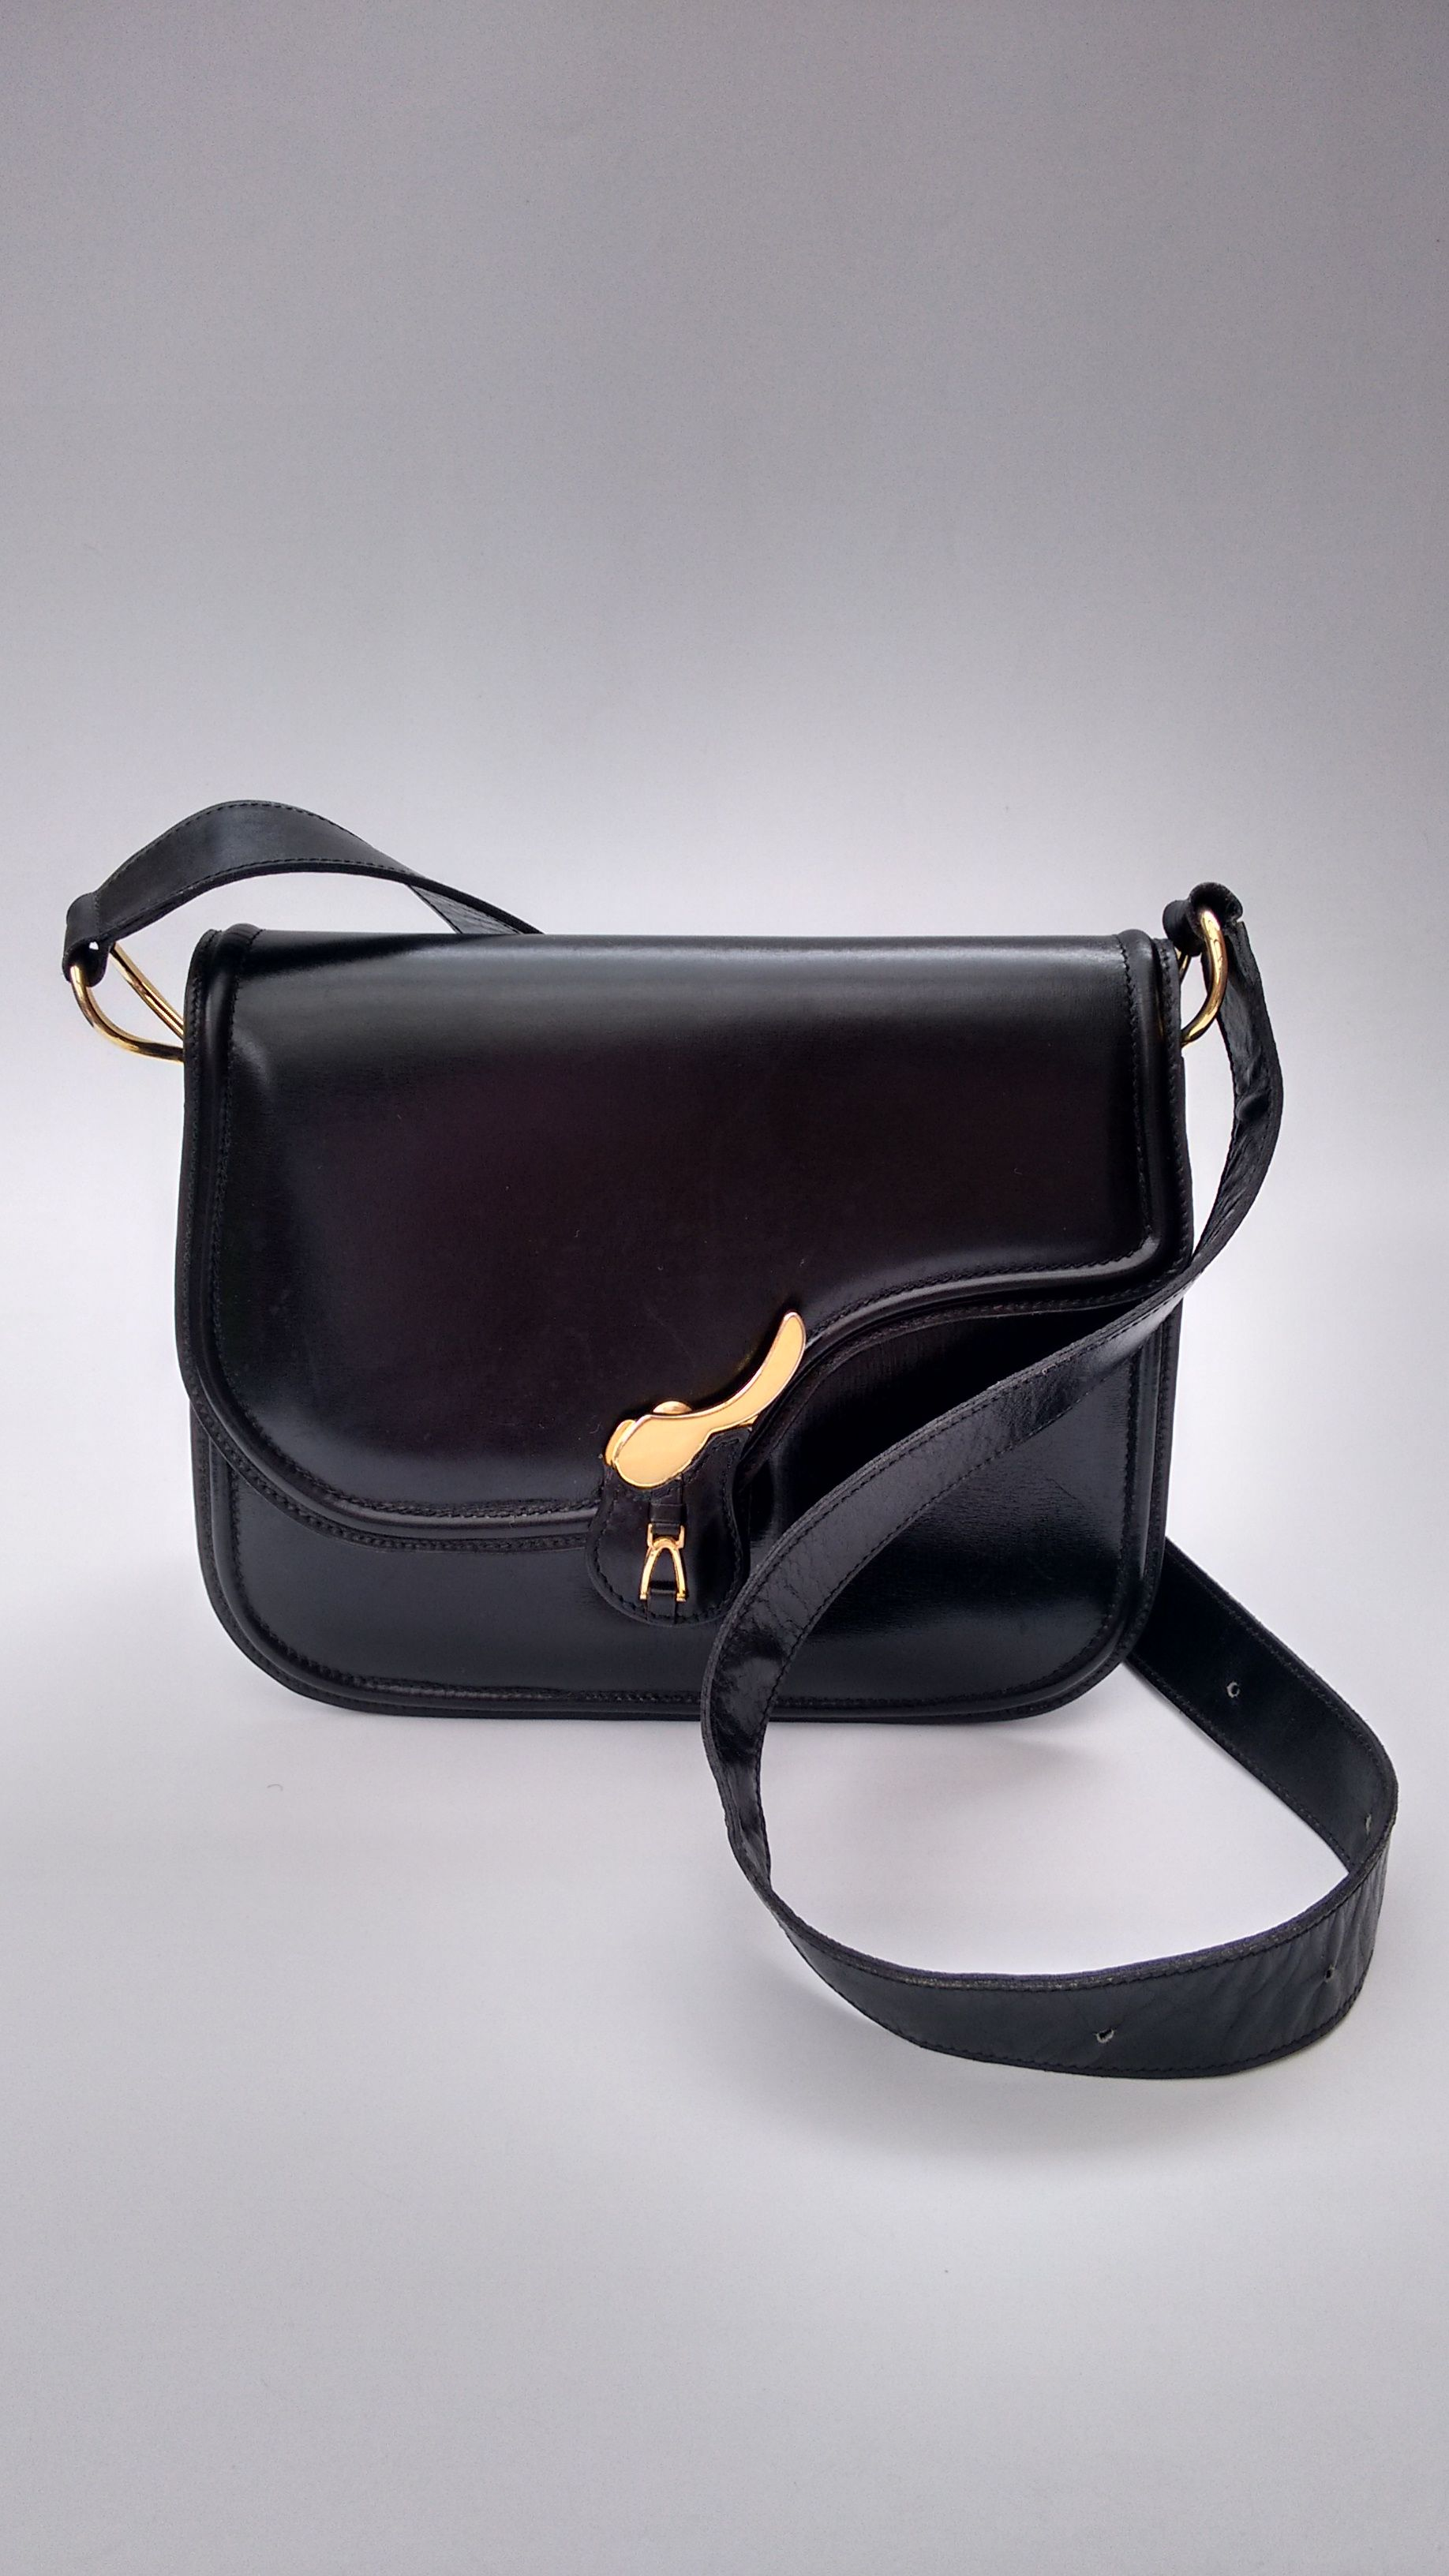 4f3202701f CÉLINE Bag. Celine Vintage Black Leather Saddle Style Shoulder Bag. French  designer purse.